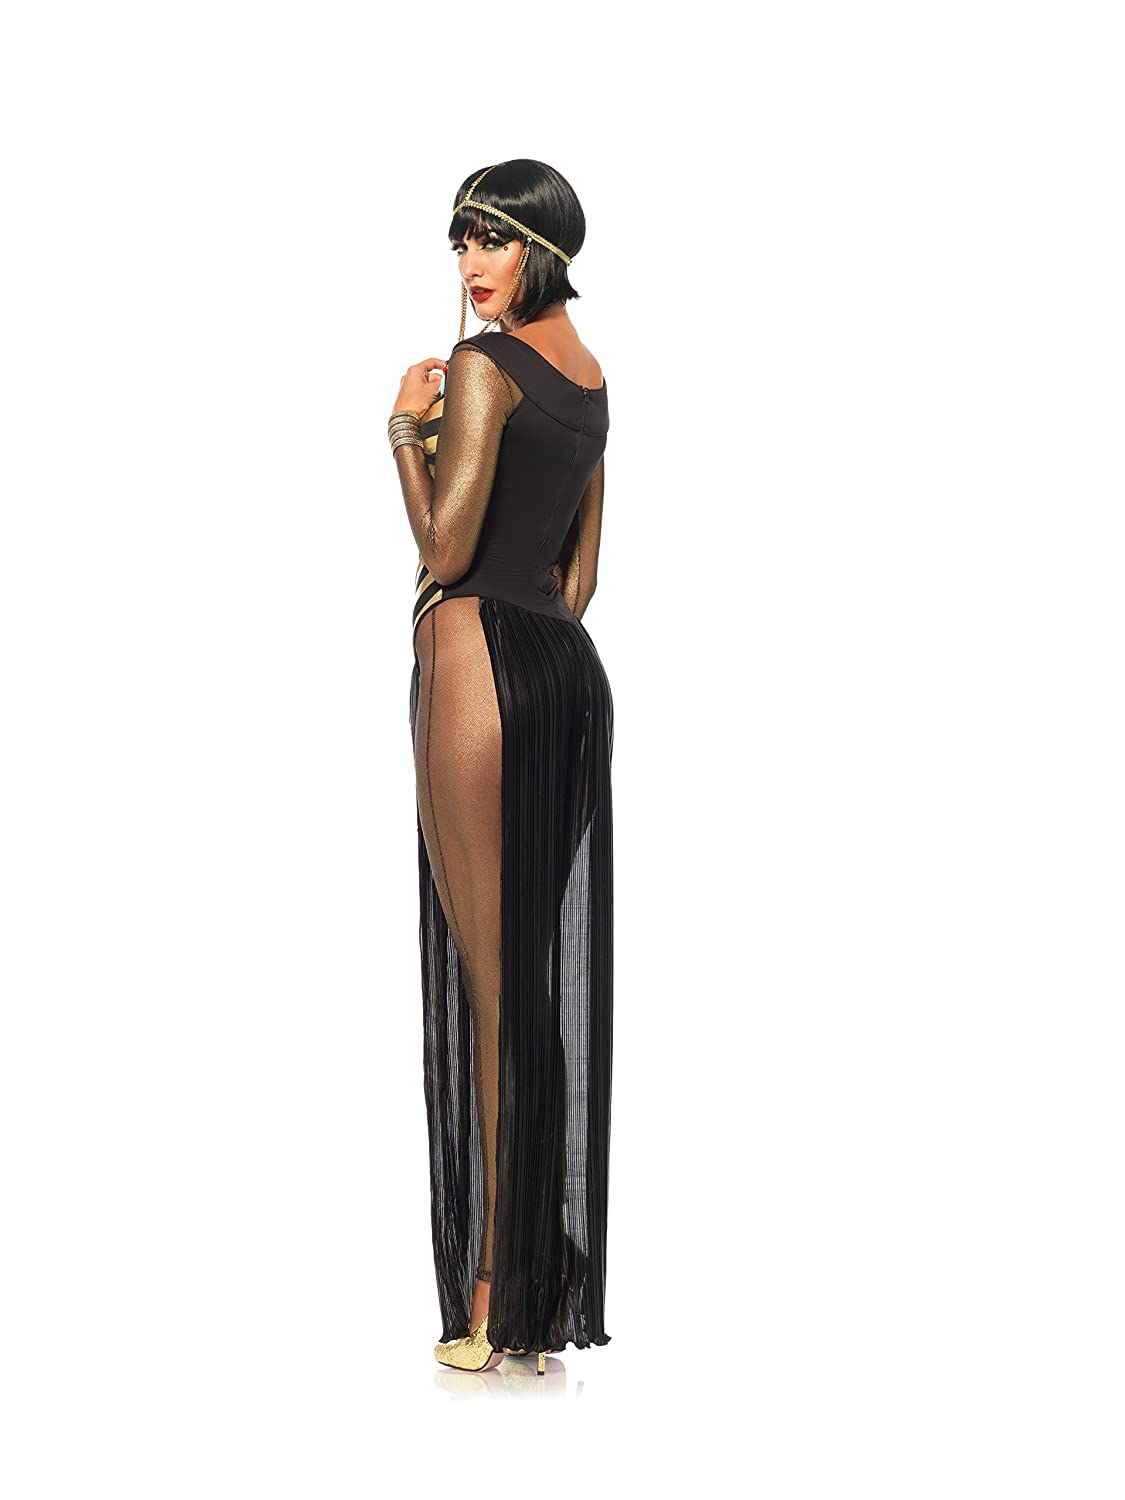 Amazon.com: Leg Avenue Women\'s Goddess Isis: Clothing